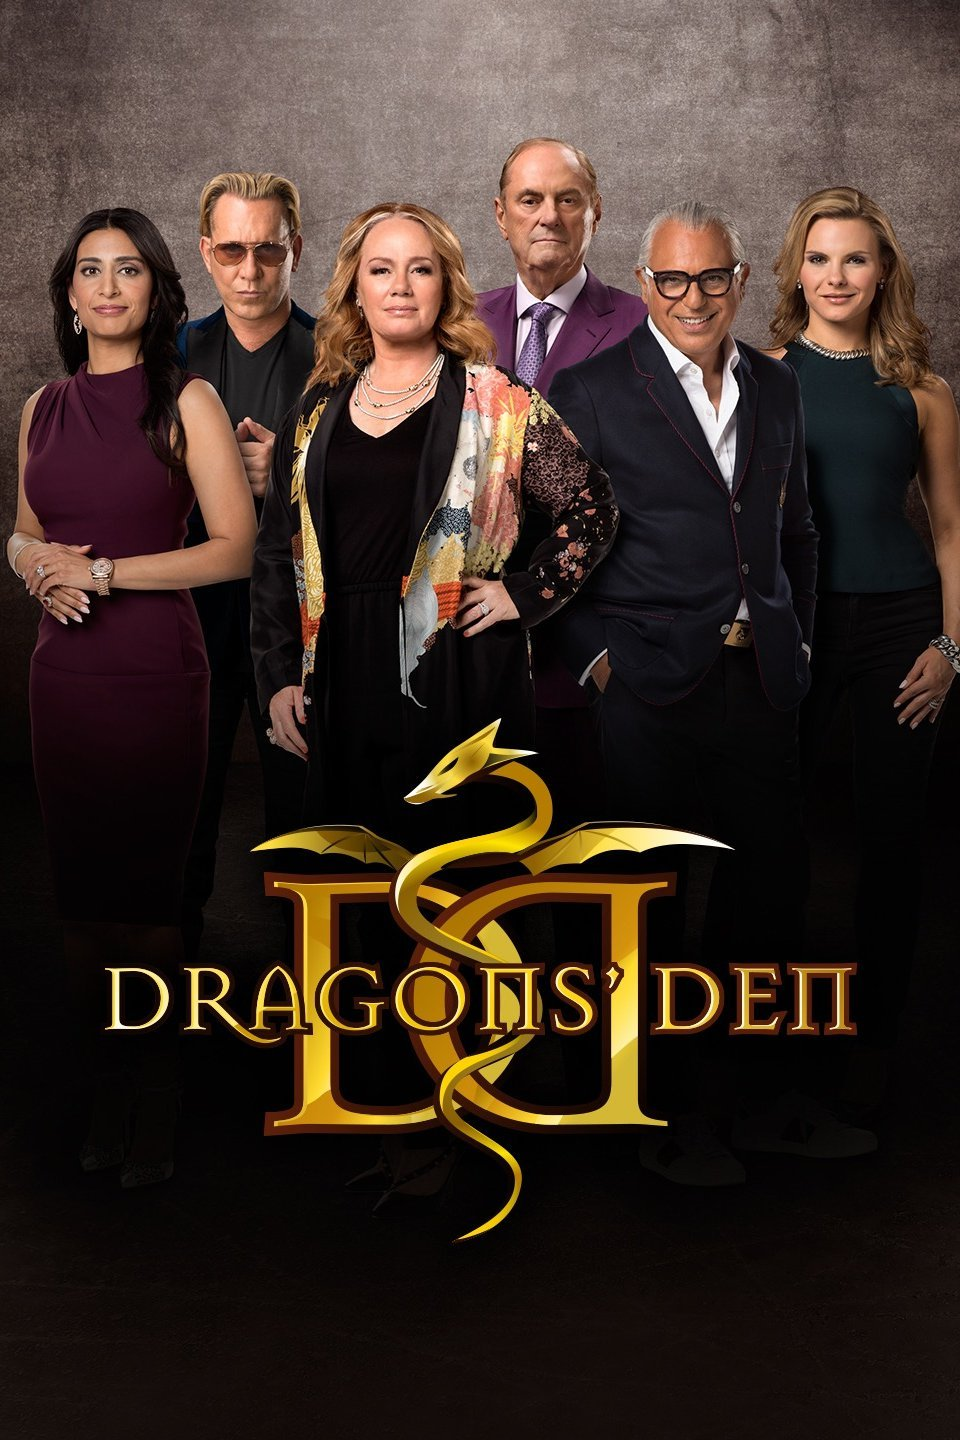 Dragons' Den - Season 16 Episode 16